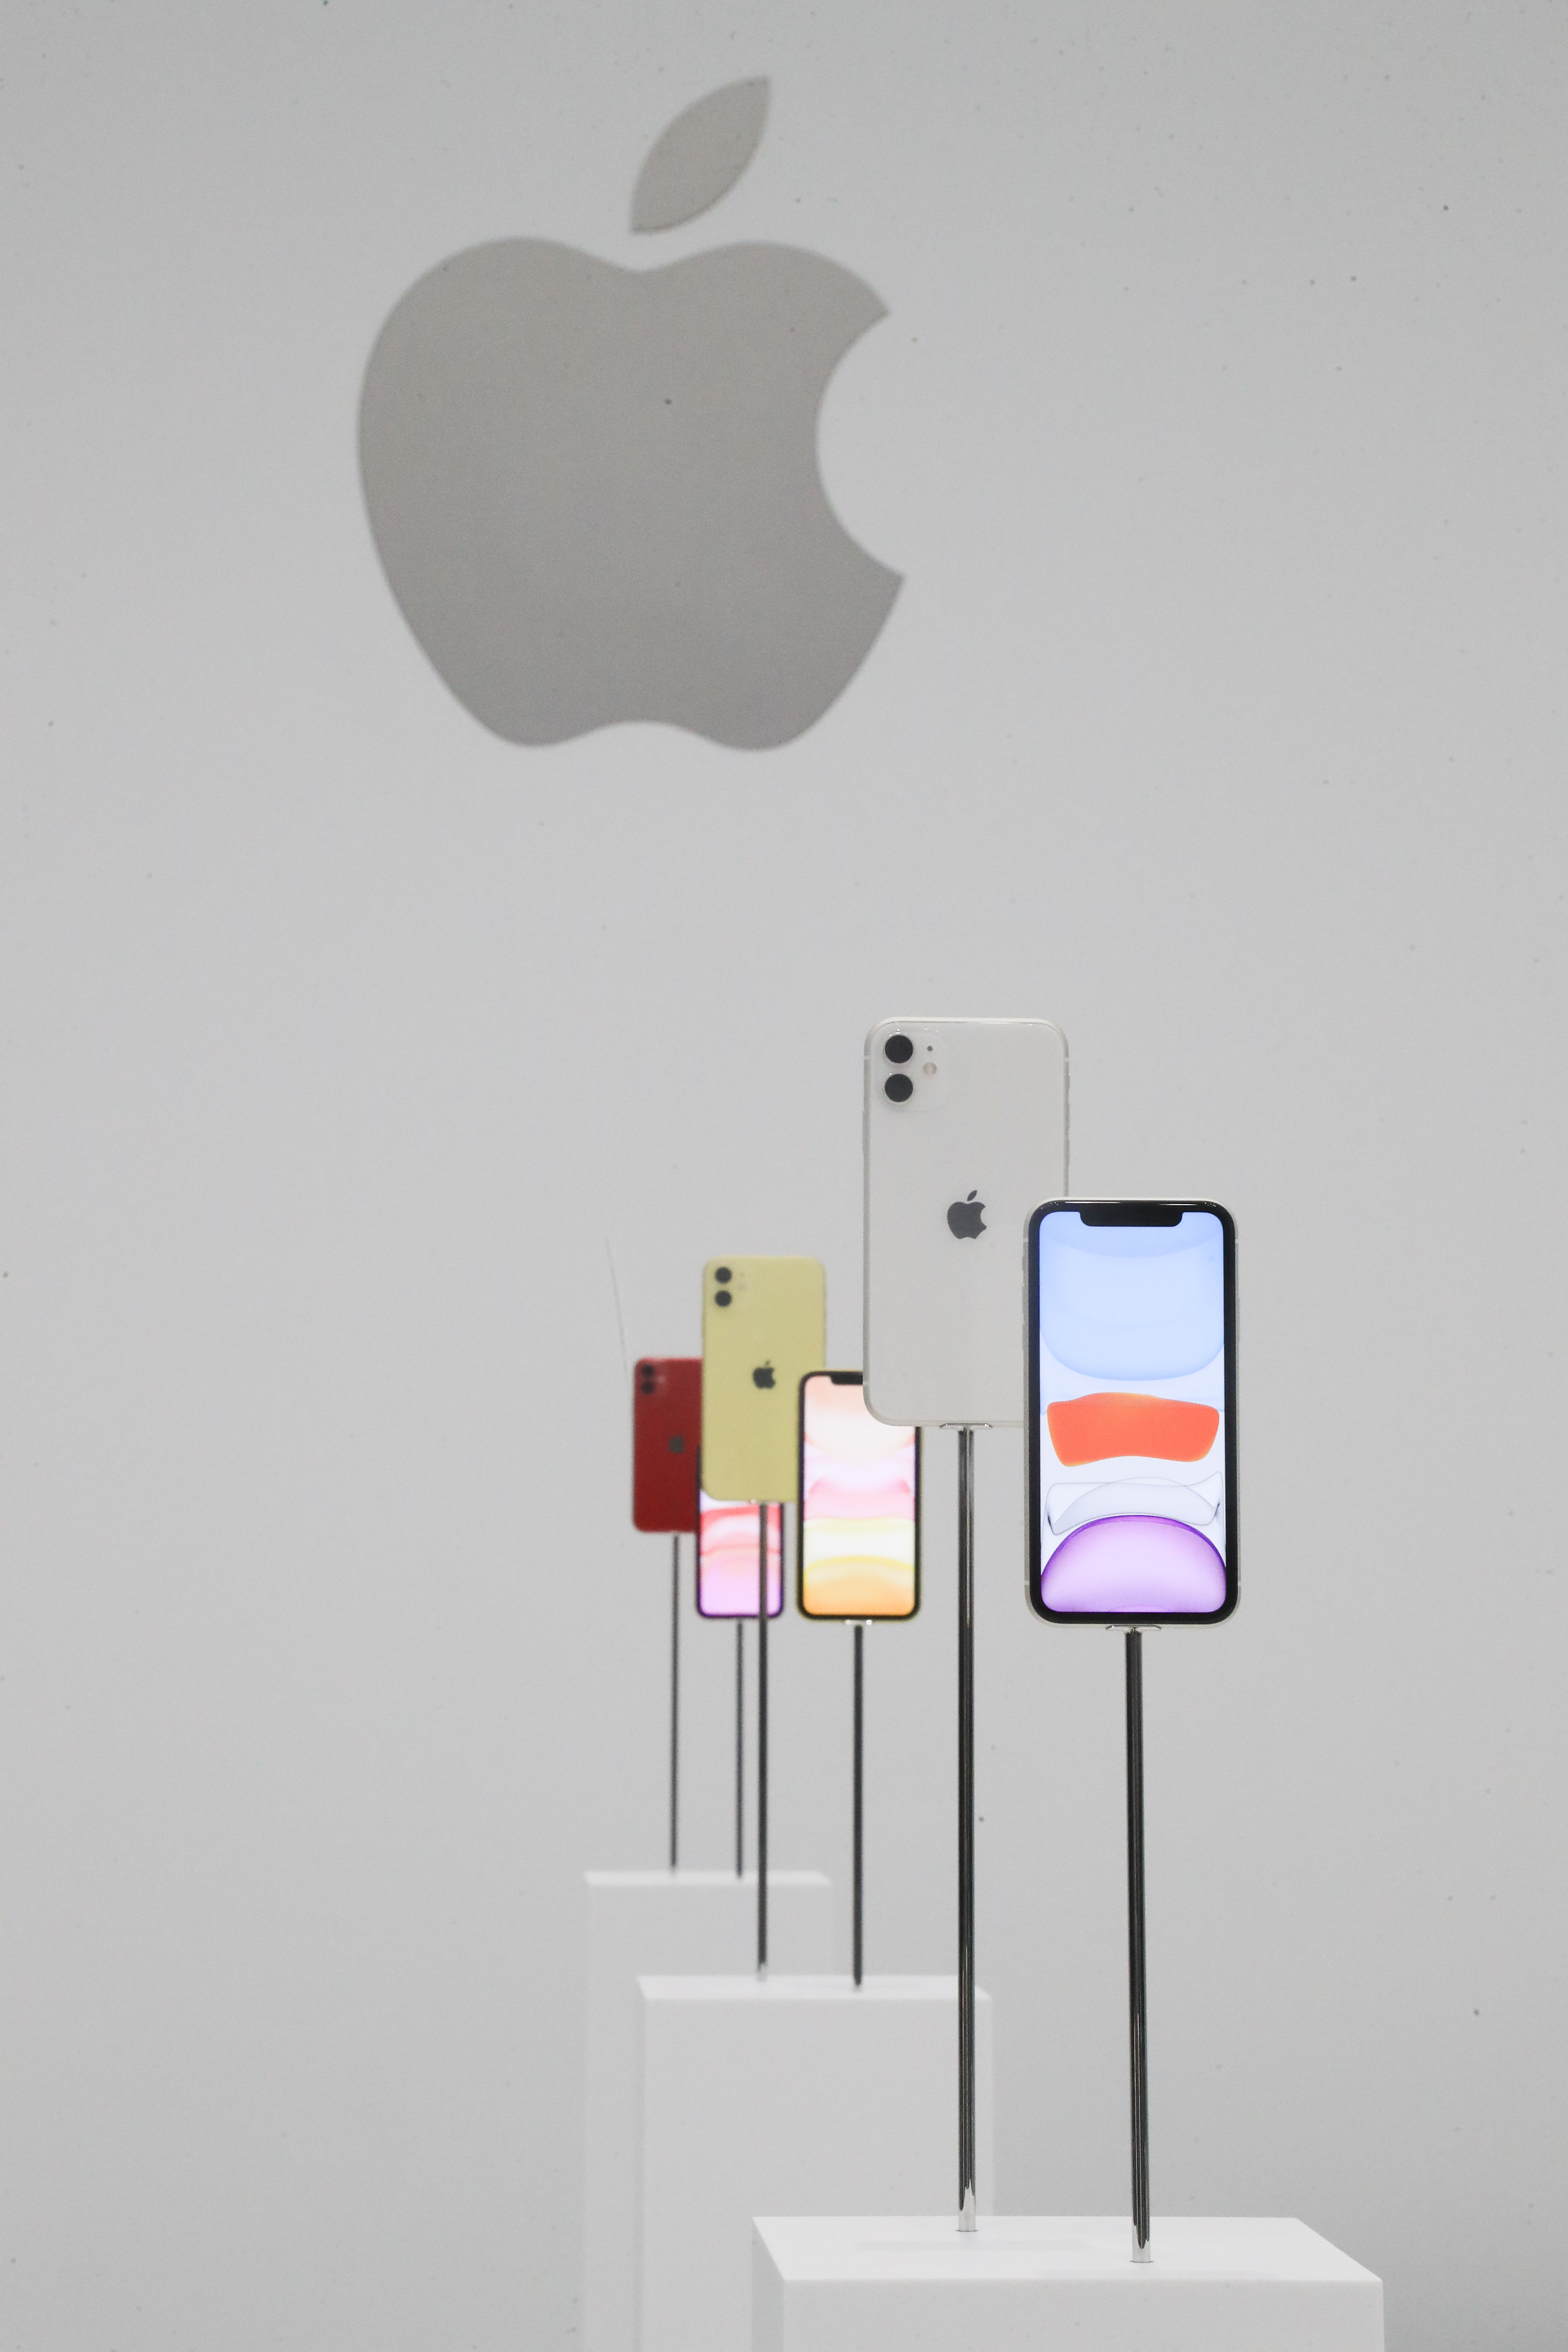 Apple iPhone 11s on display during the hands-on portion of Apple's annual product launch event in Cupertino.